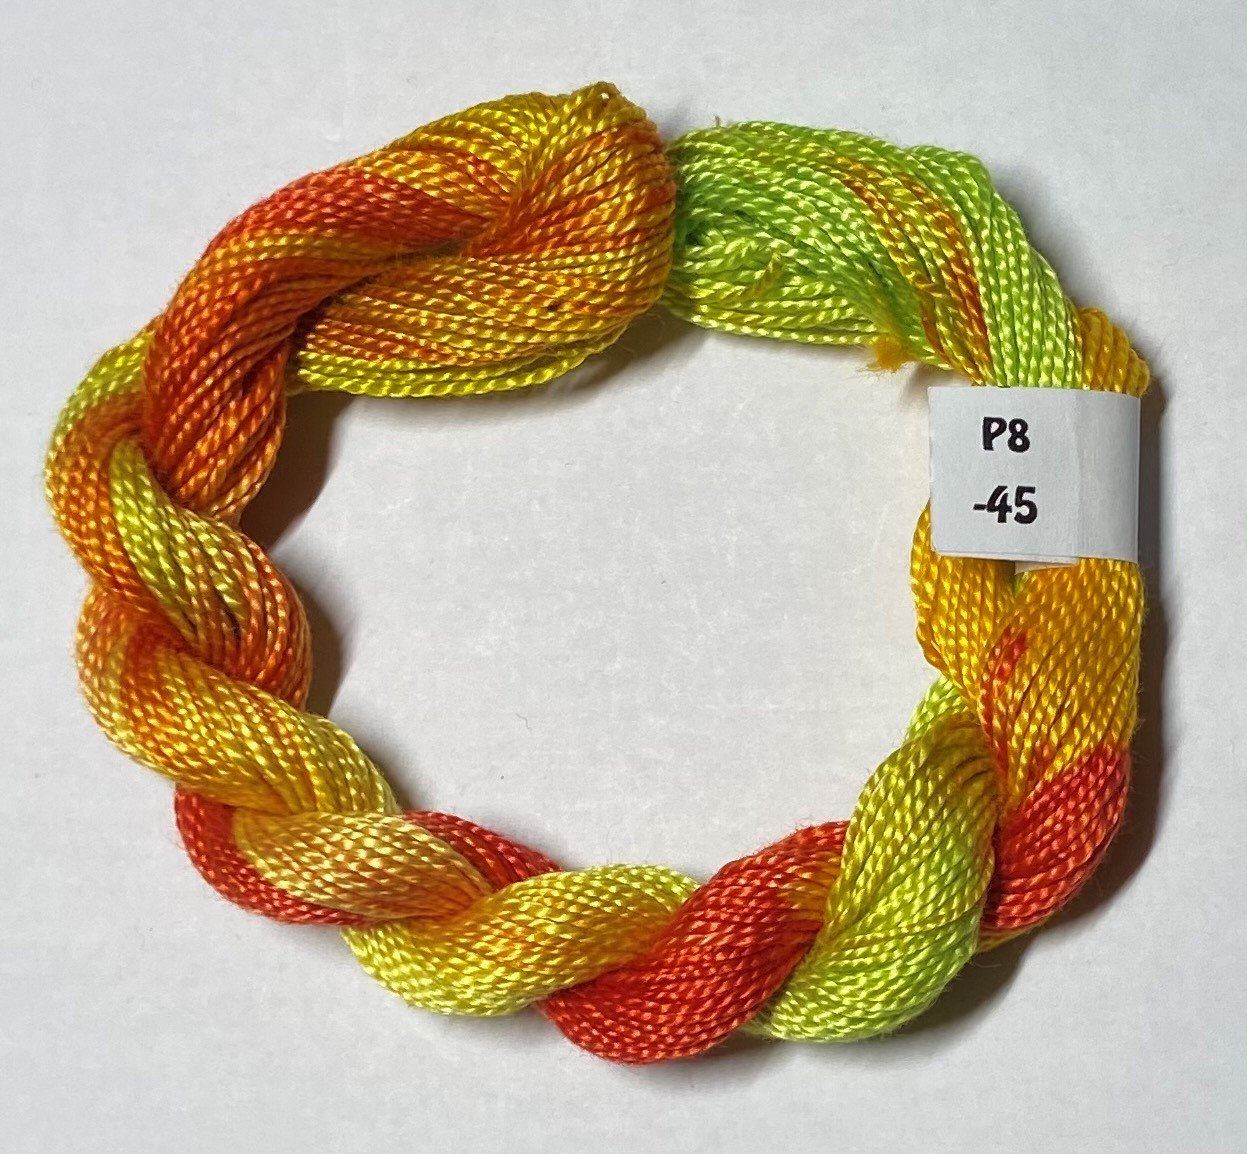 #8 Perle Cotton Lime Green, Orange, Yellow